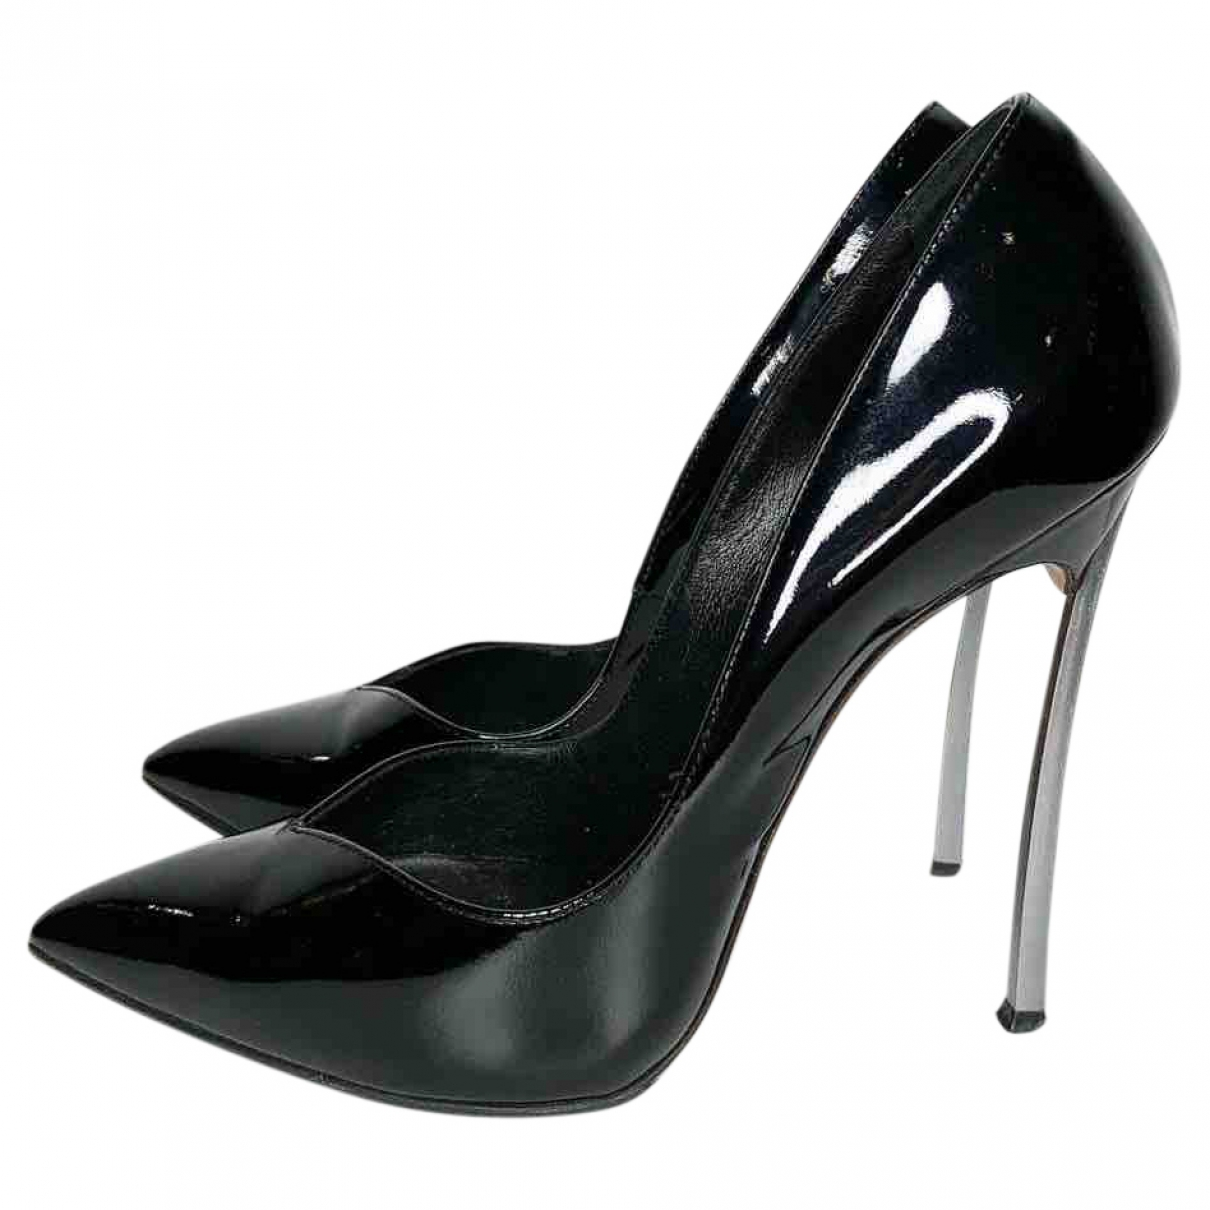 Casadei \N Black Patent leather Heels for Women 37.5 EU